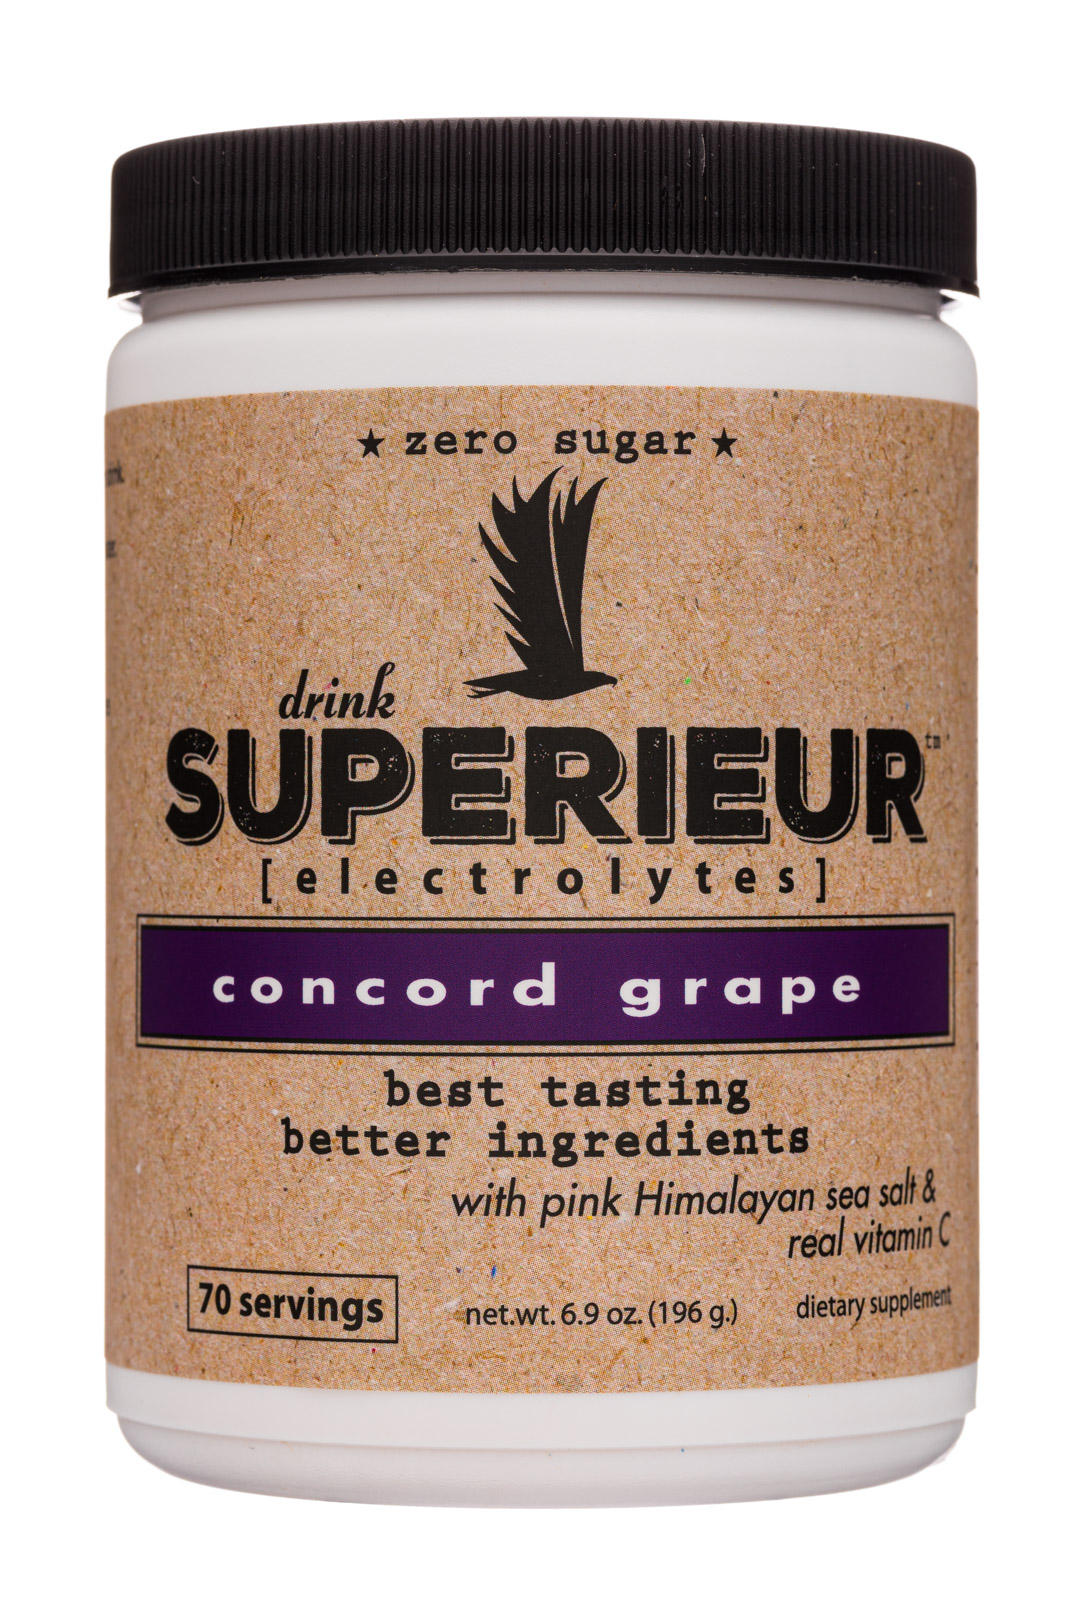 Concord Grape - 70 servings